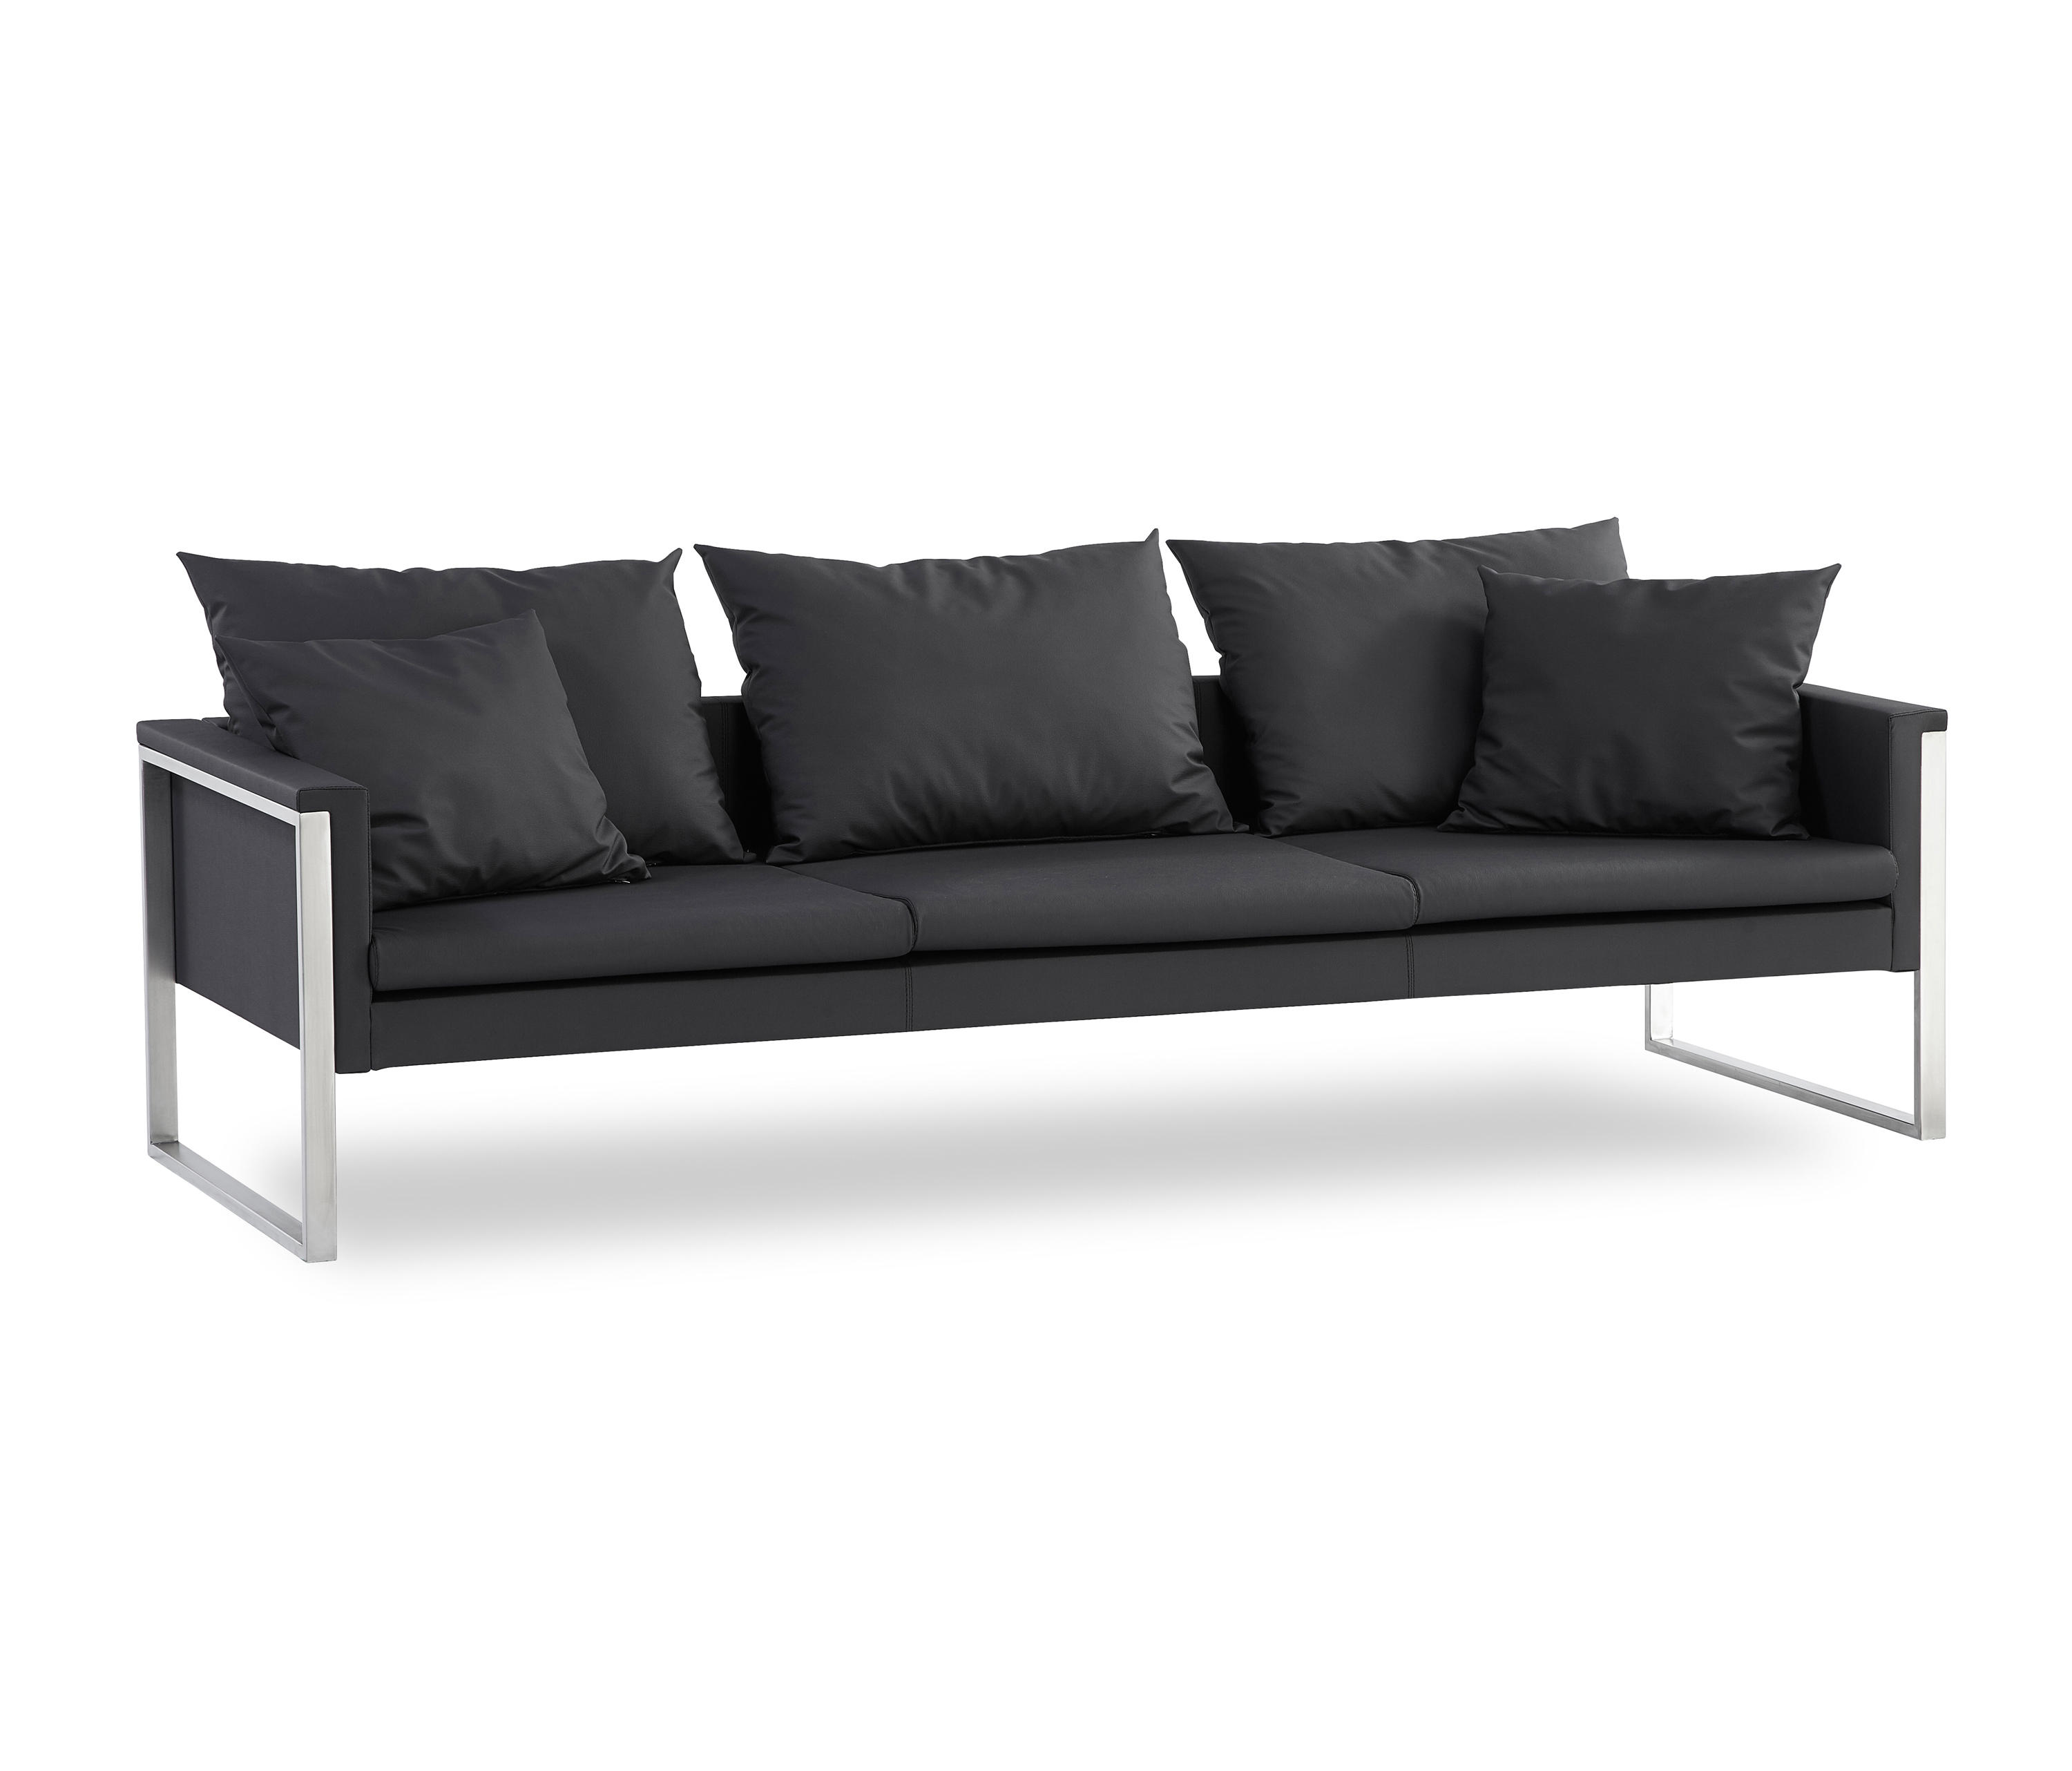 Schlafsofa design lounge  GO LARGE - Lounge sofas from B&T Design | Architonic